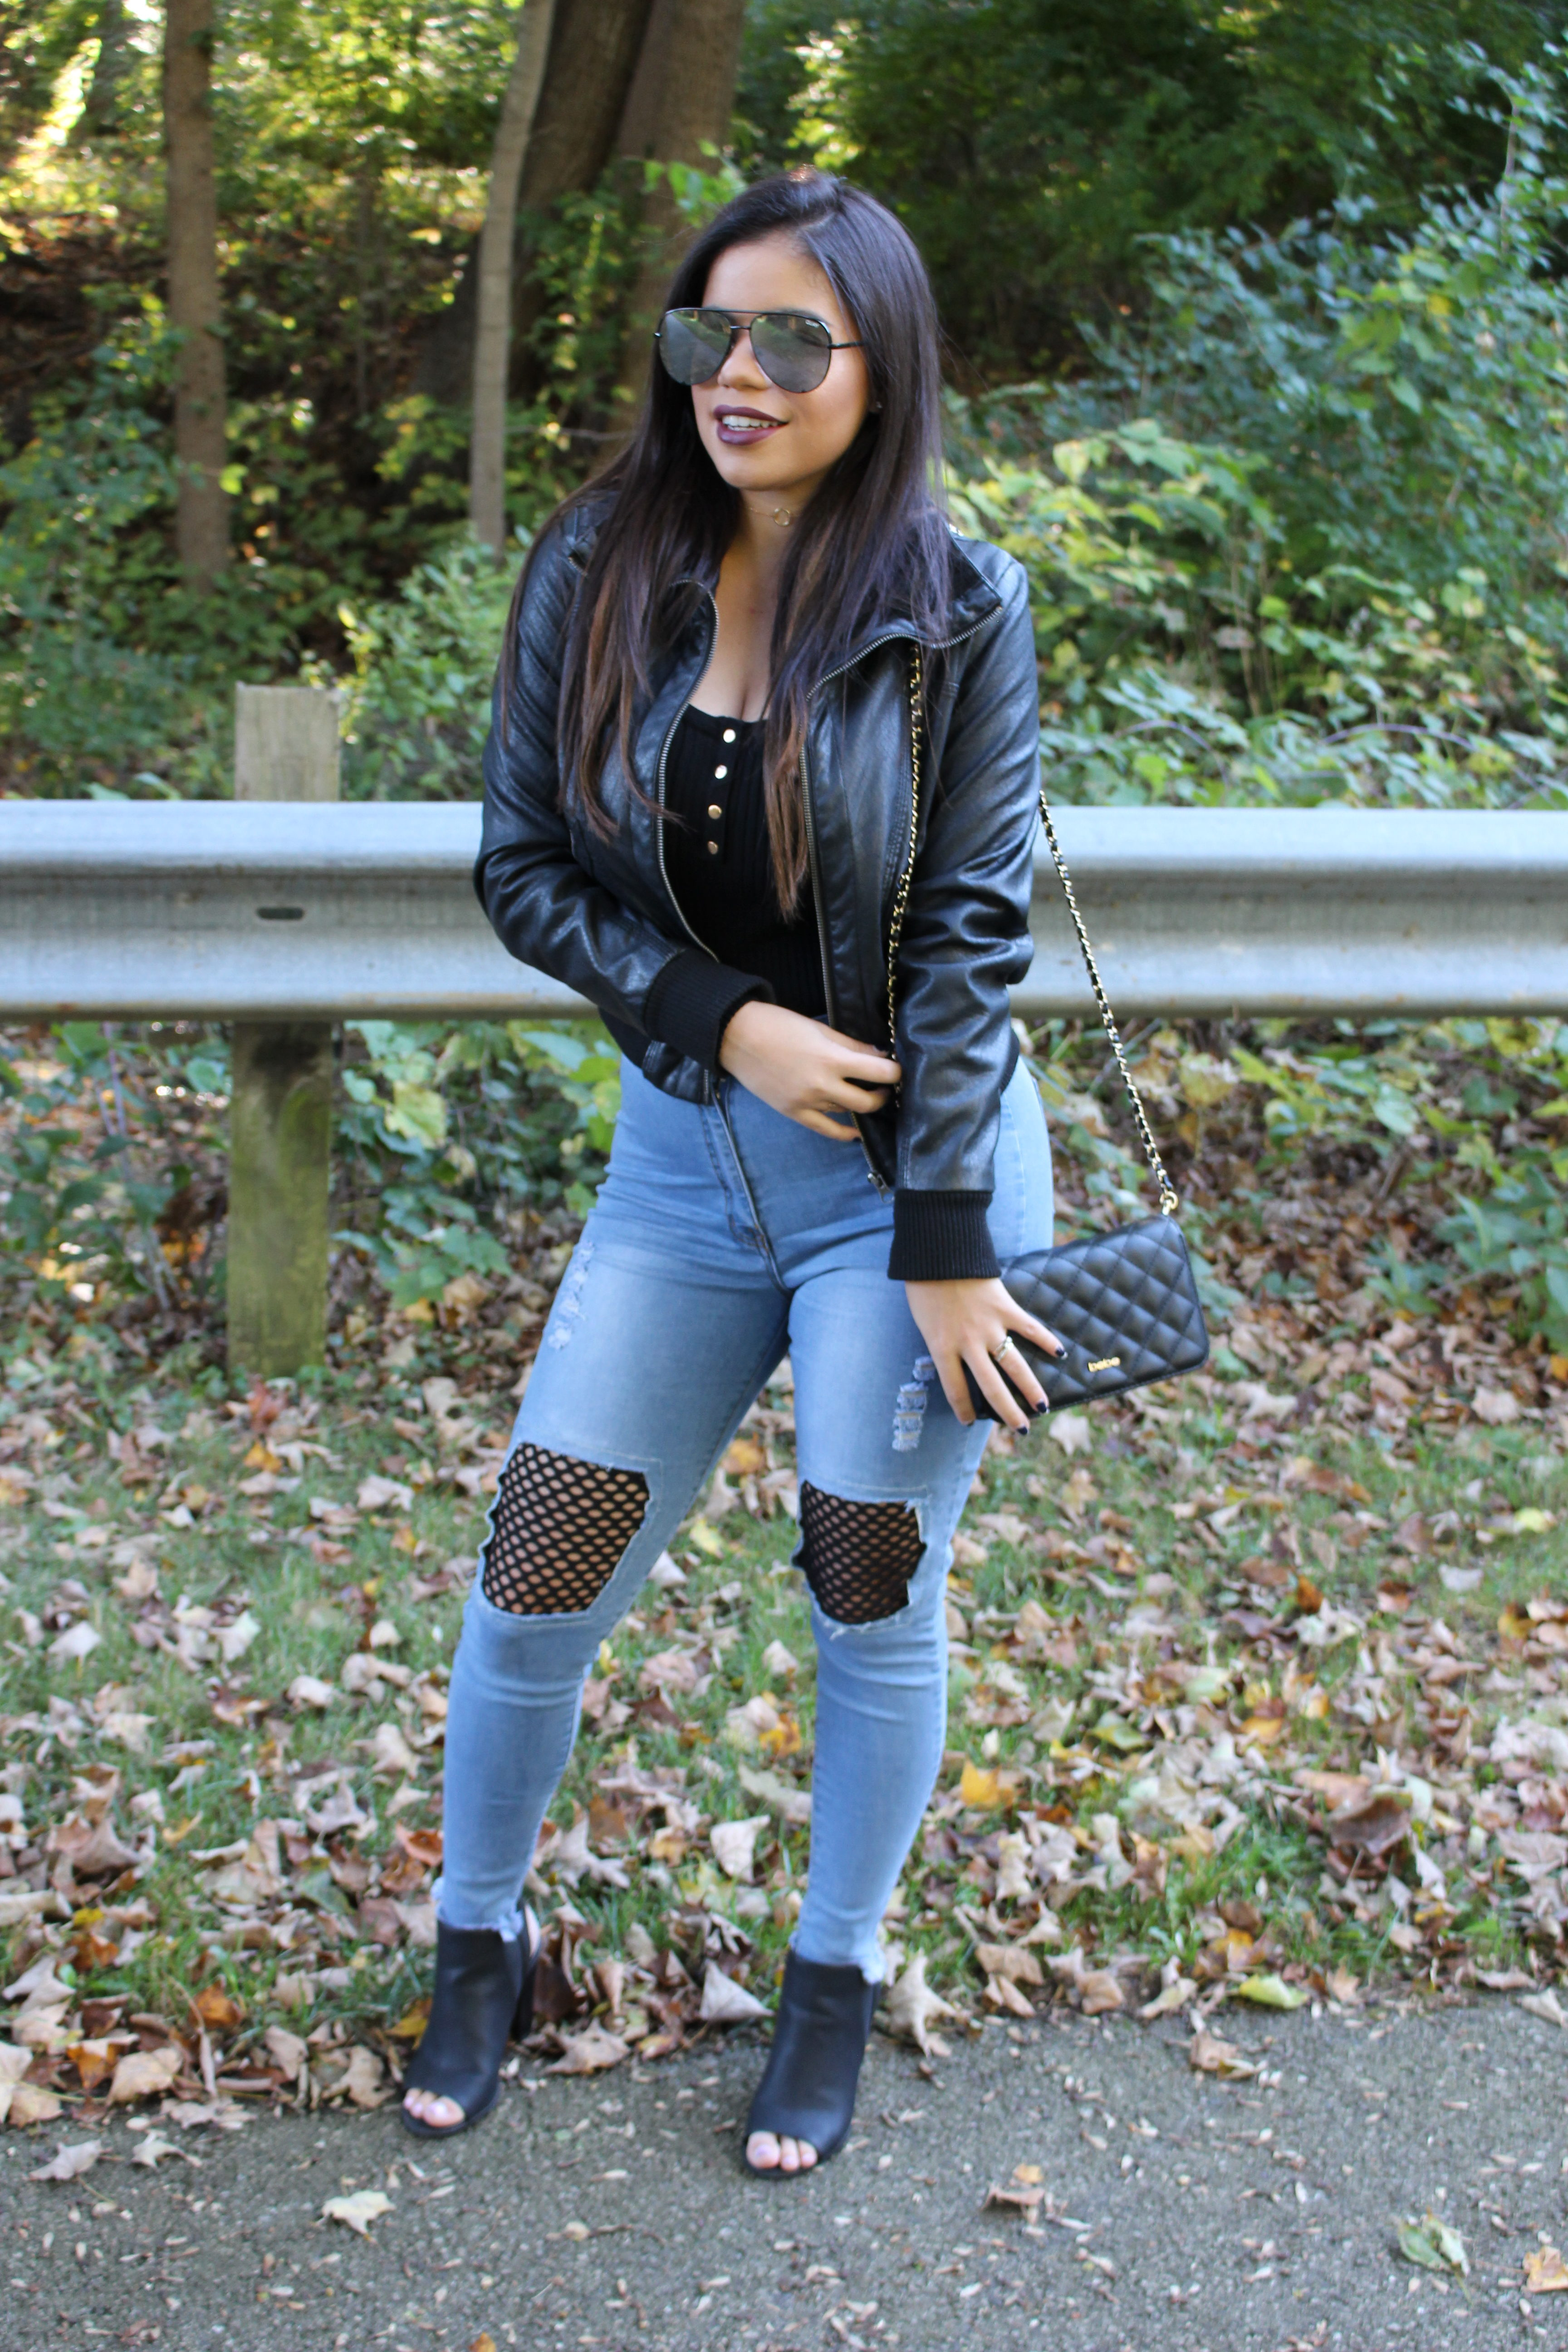 hot miami styles jeans rocker outfit jeans details ootd ootn by alejandra avila tufashionpetite